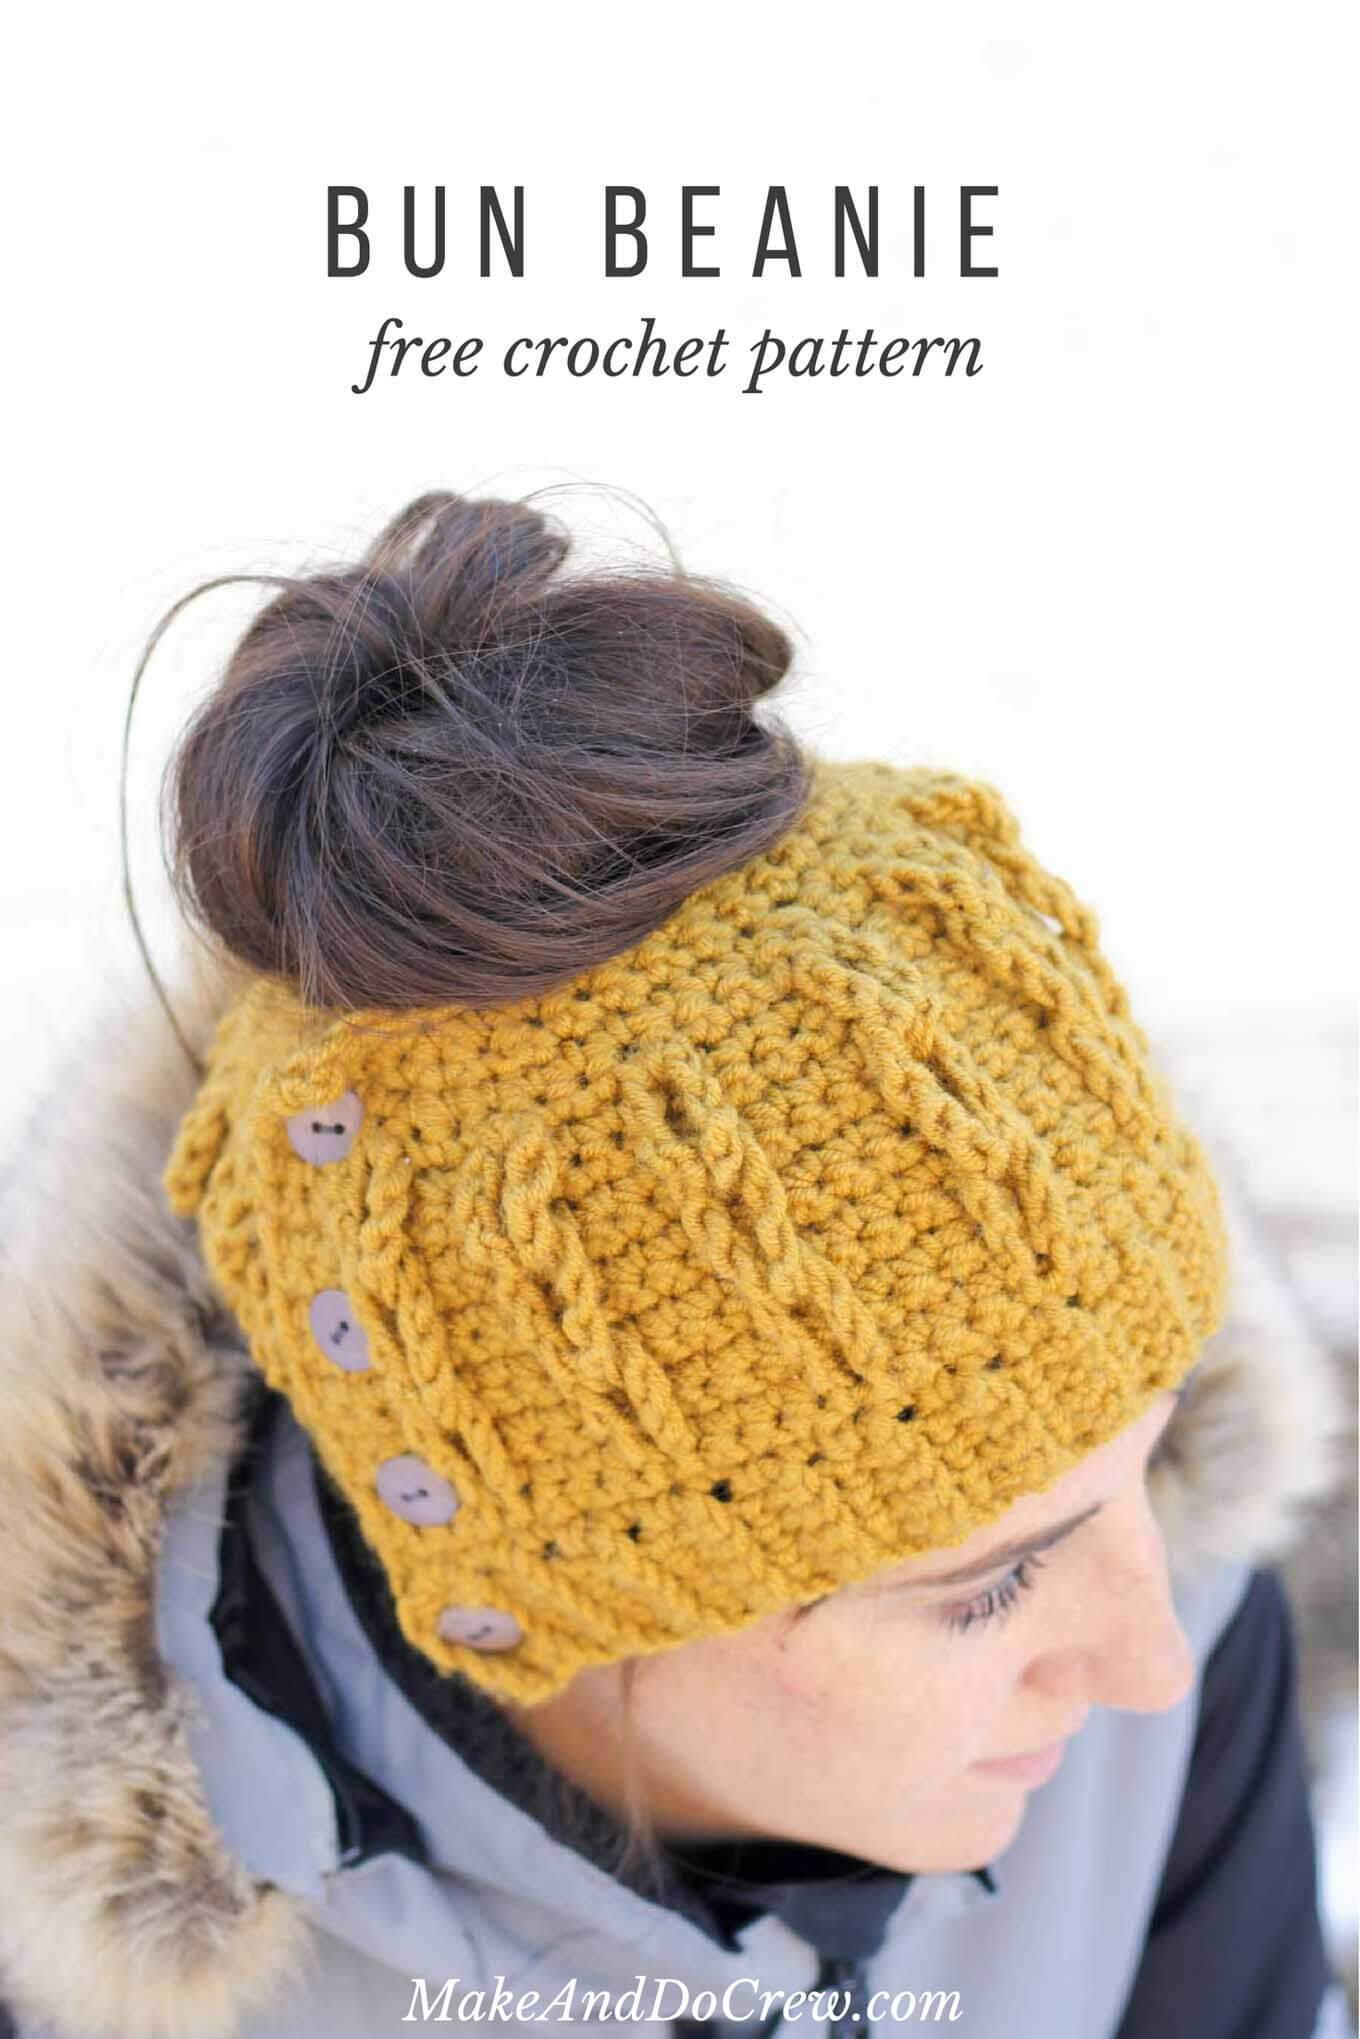 Crochet Patterns Messy Bun Beanie : Crochet Bun Beanie with Faux Cables - Free Pattern and Video Tutorial!